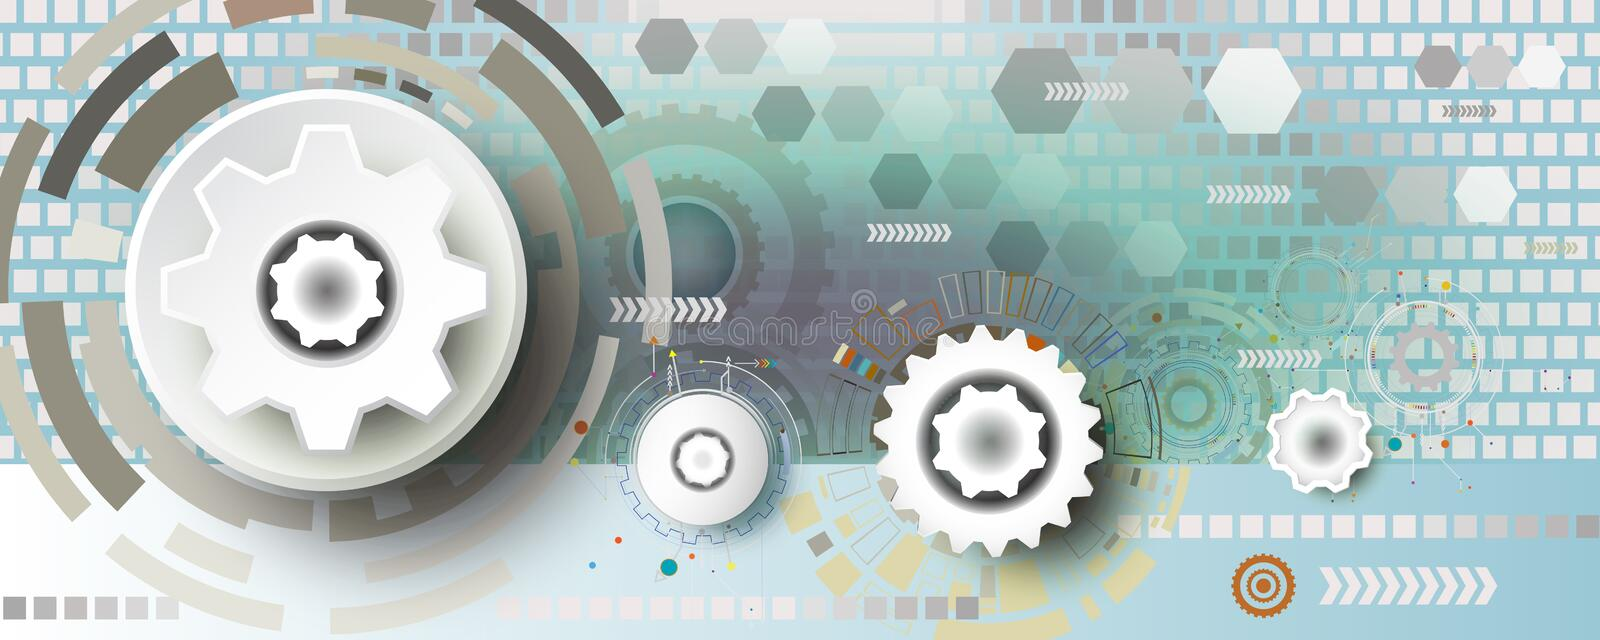 Abstract technology gear wheel engineering on square background. Abstract technology gear wheel engineering on square background, Vector illustration tech royalty free illustration